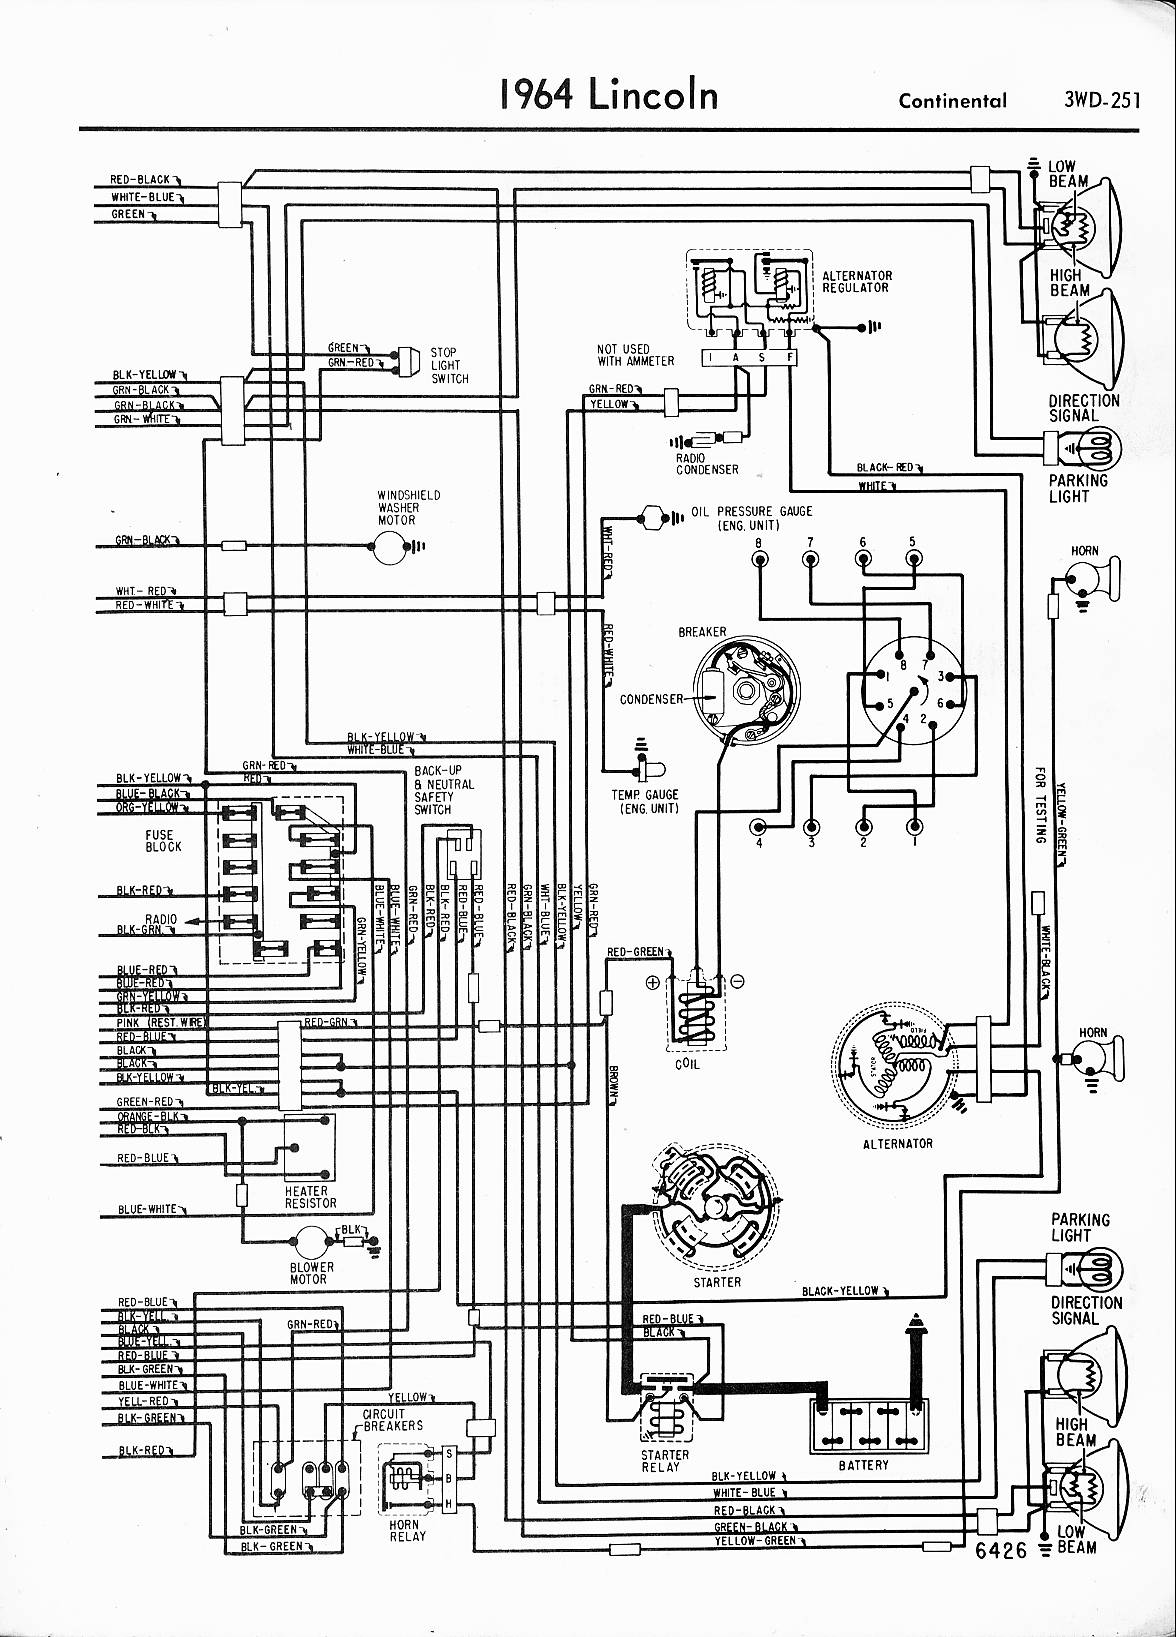 1964 impala power window wiring diagram reveolution of wiring 1964 chevy impala wiring diagram lincoln wiring diagrams 1957 1965 rh oldcarmanualproject com 1962 chevy impala wiring diagram chevy wiring diagrams